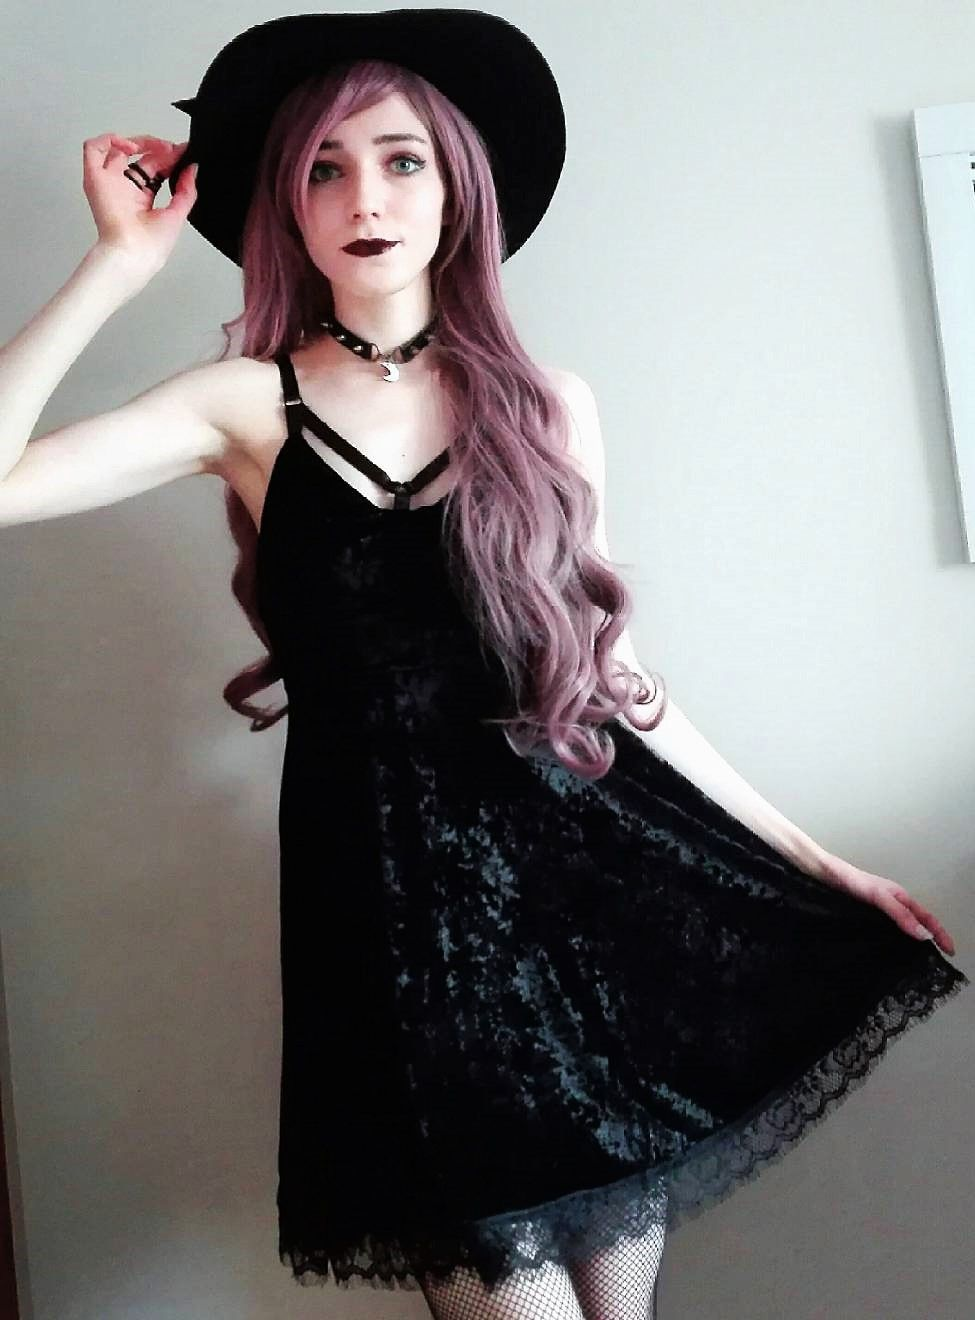 a69cb4b348d Nu-goth wicca look by amaris noir -  halloween  fashion  alternative   nugoth  wicca  witchy